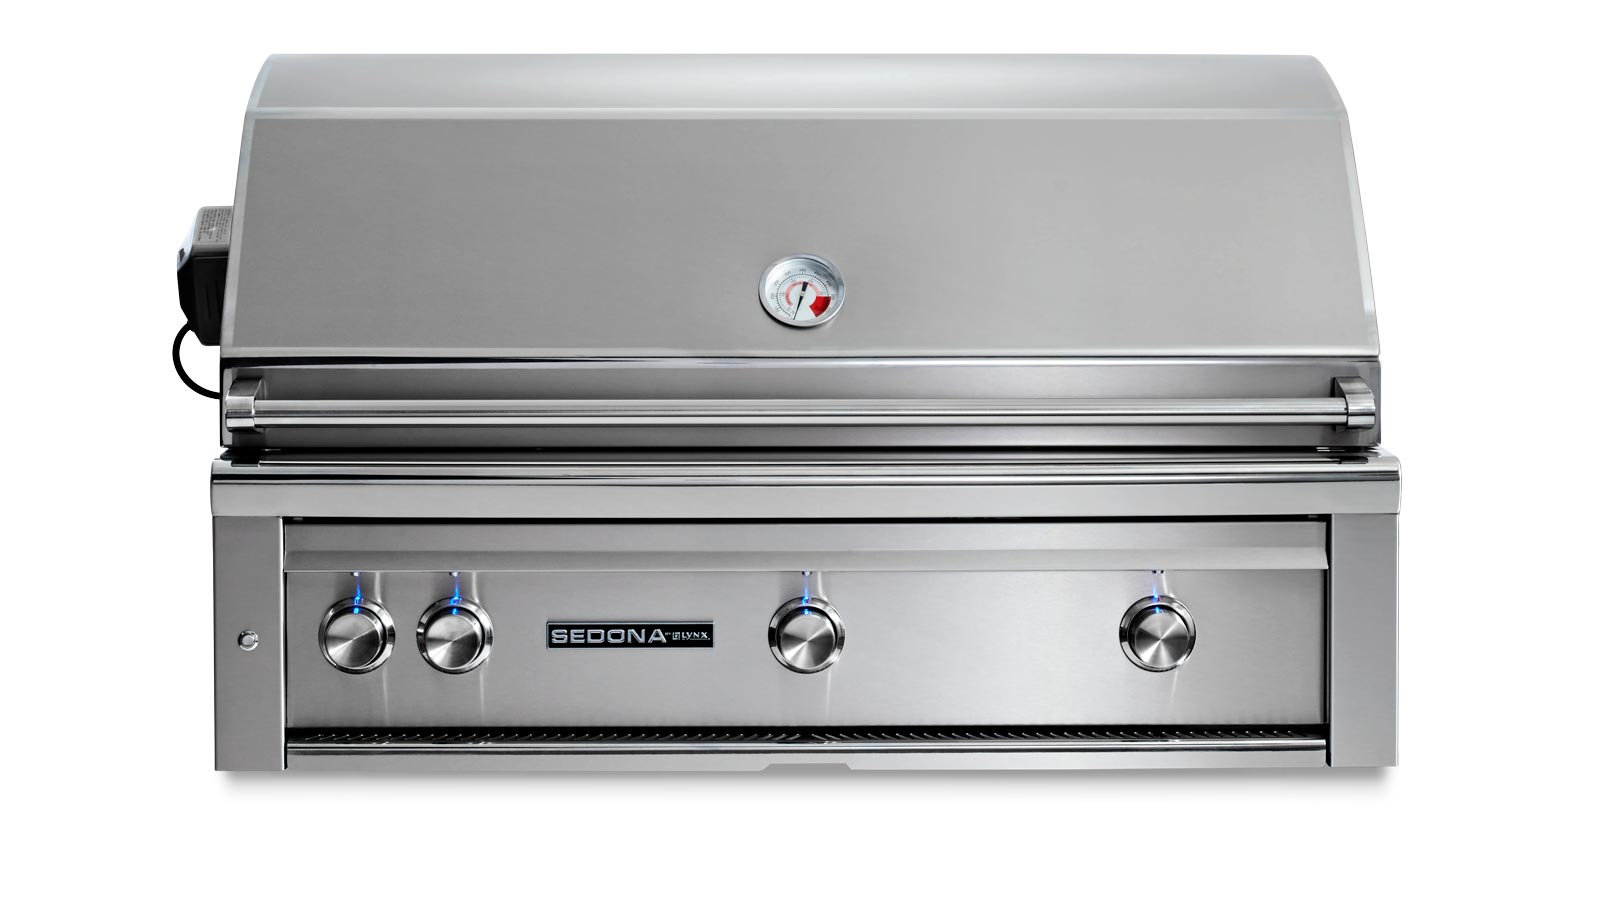 "Sedona by Lynx 42"" L700 Built-in Grill"